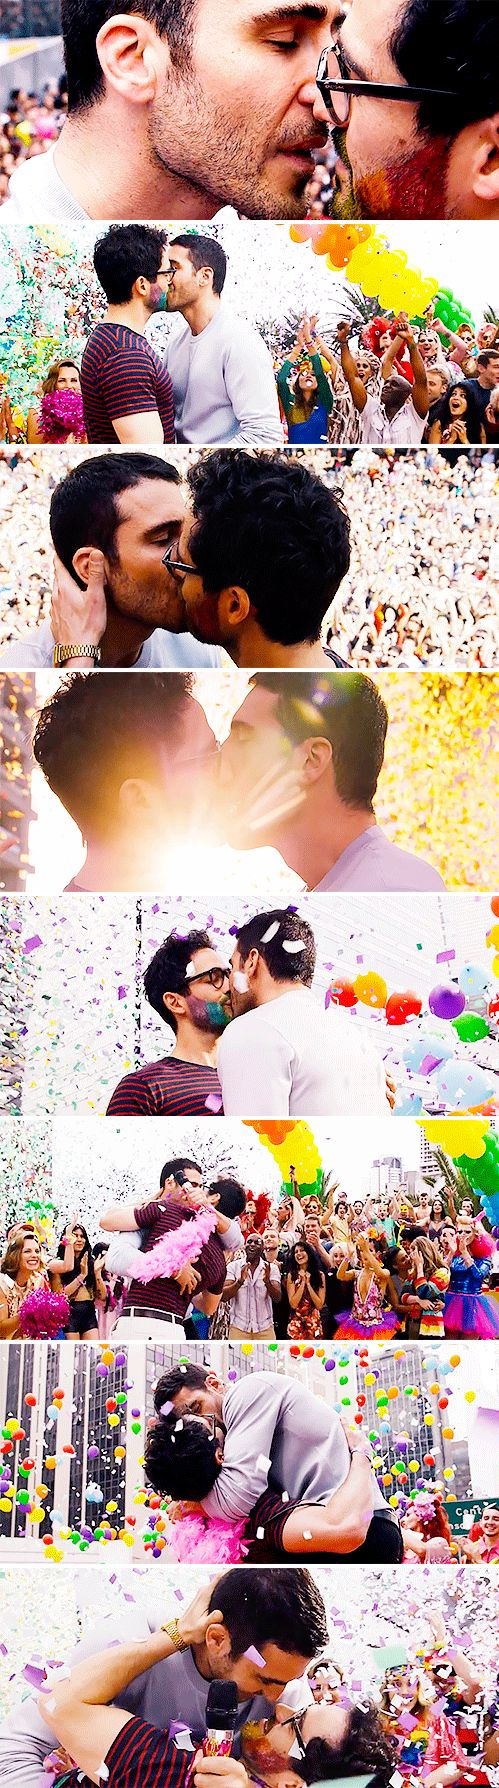 This is Hernando. He is the love of my life. I am a better and braver person because of him. And whatever it costs for me to be able to do this…I know in my heart that it is worth it. #sense8